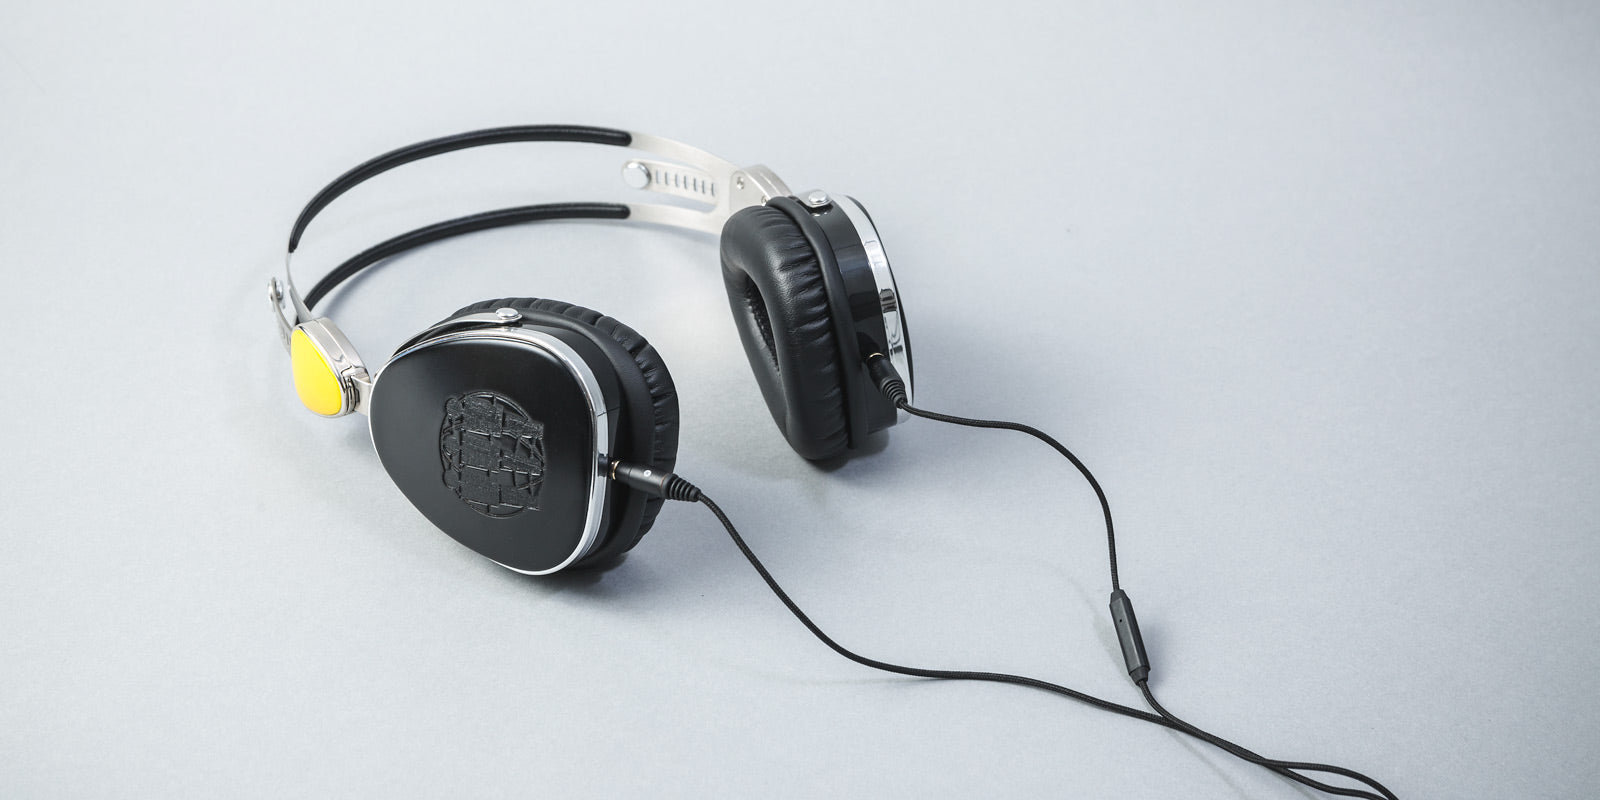 LSTN third man records wood troubadour headphones